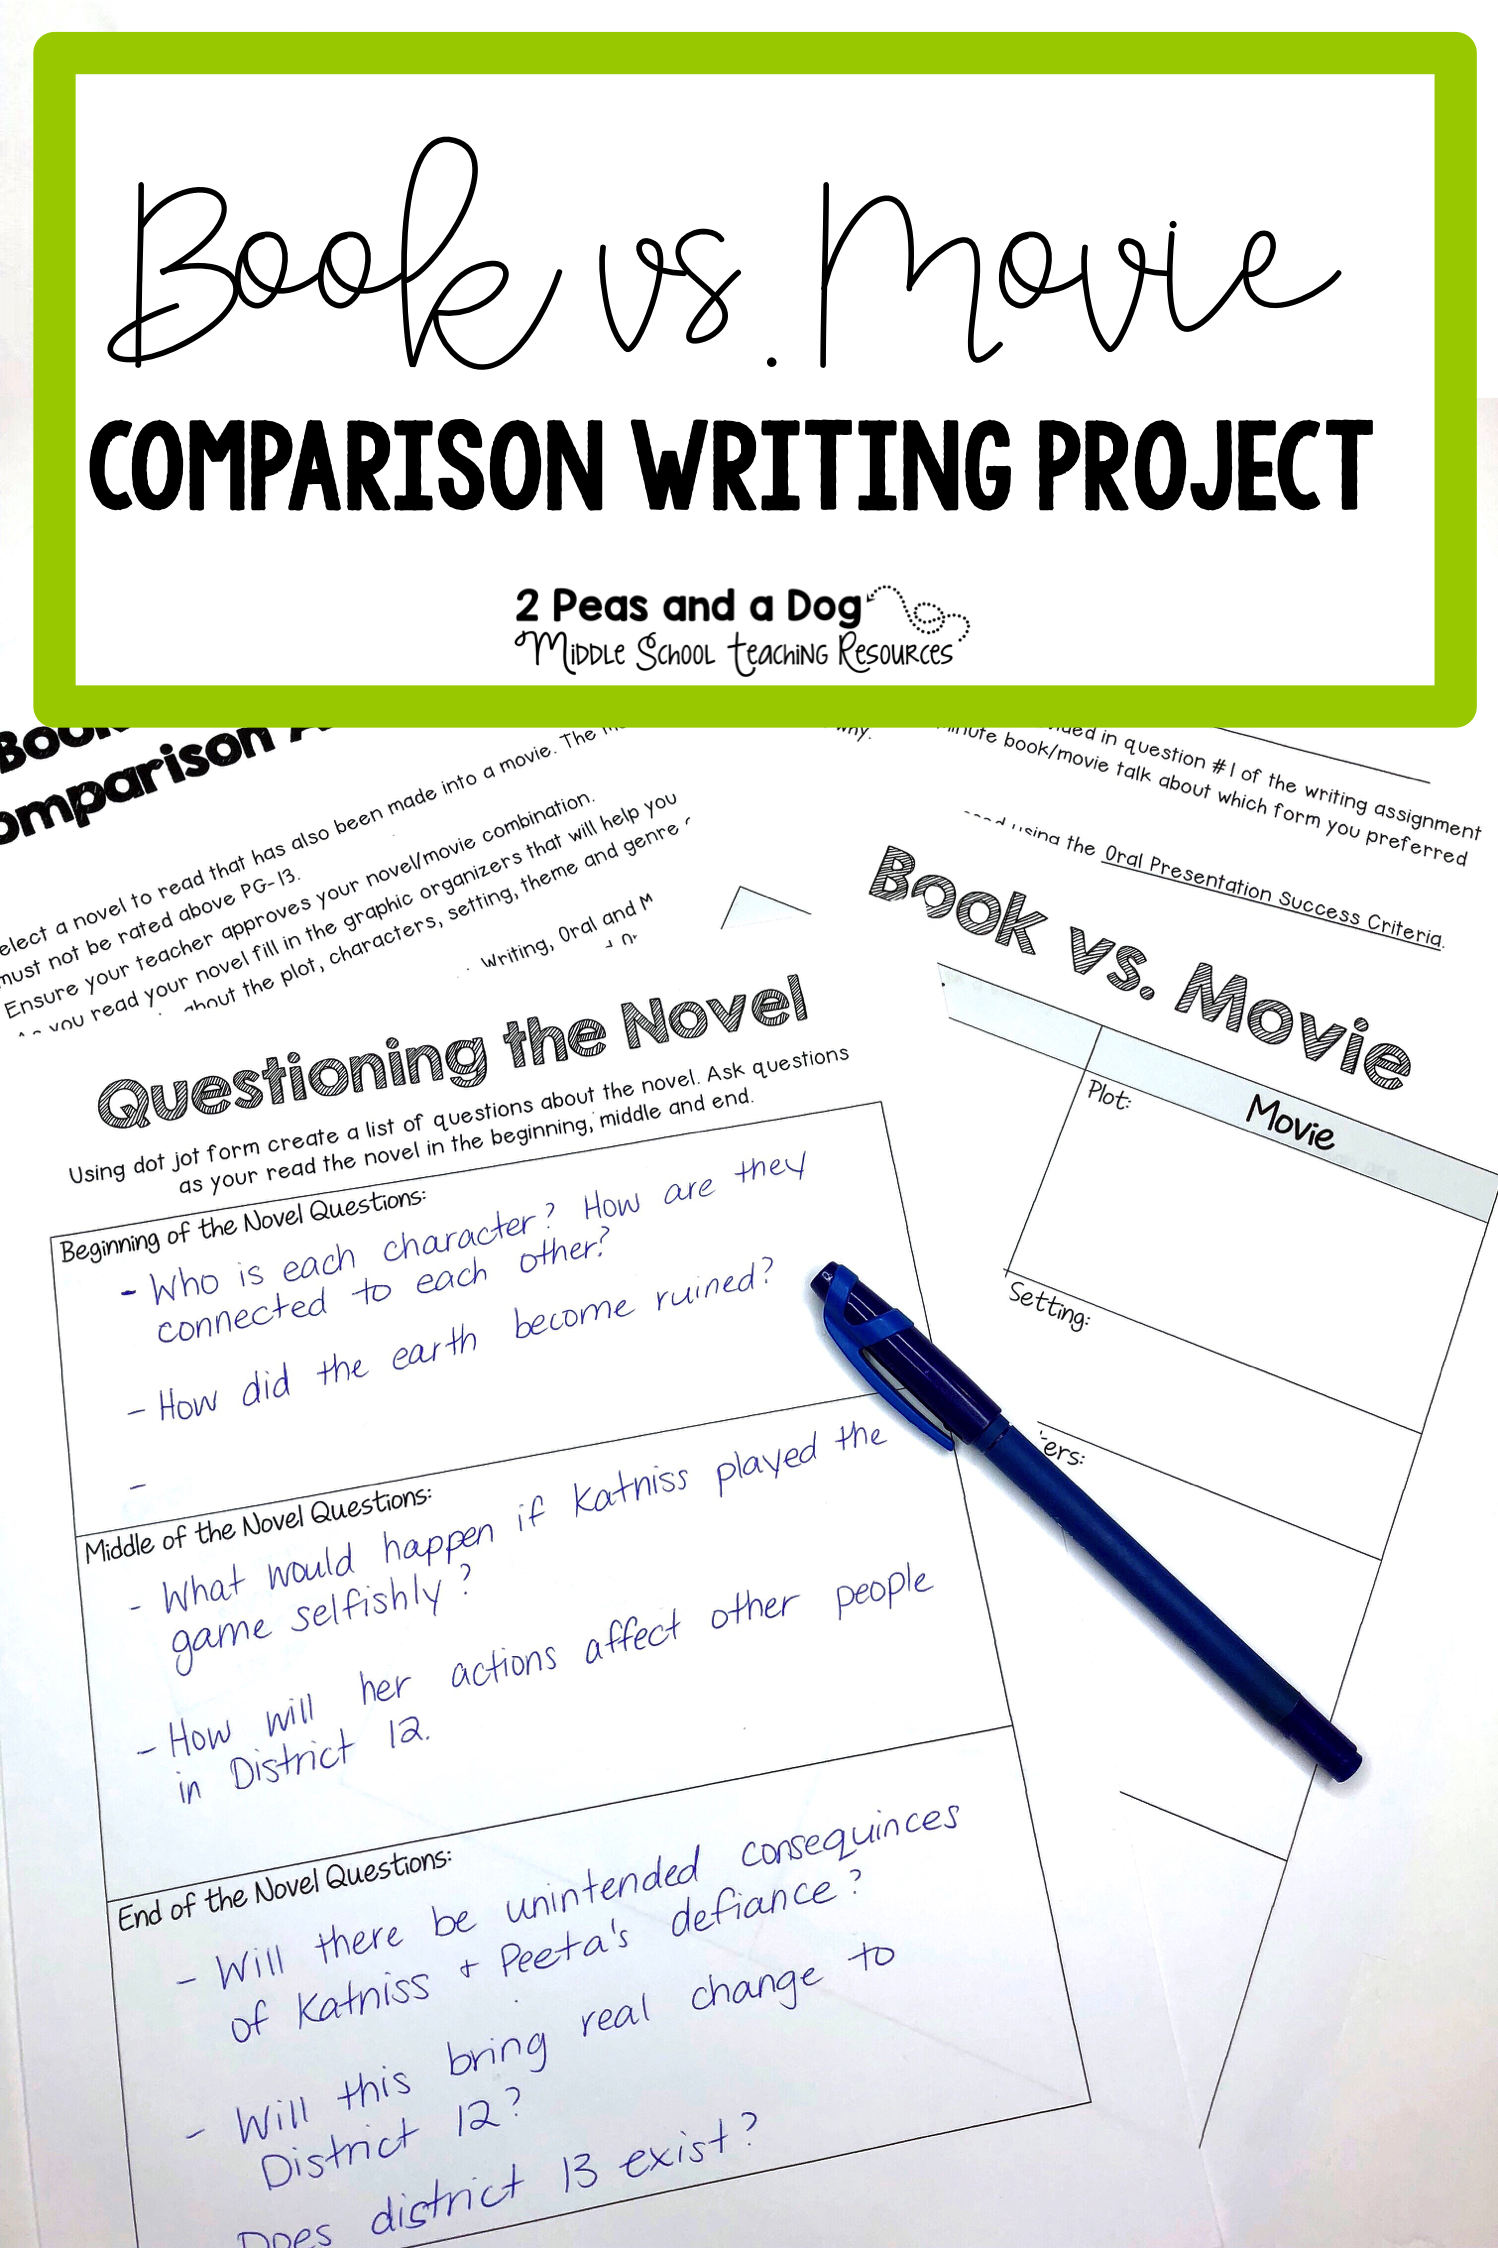 Book Versus Movie Comparison Analysis Project Book Versus Movie